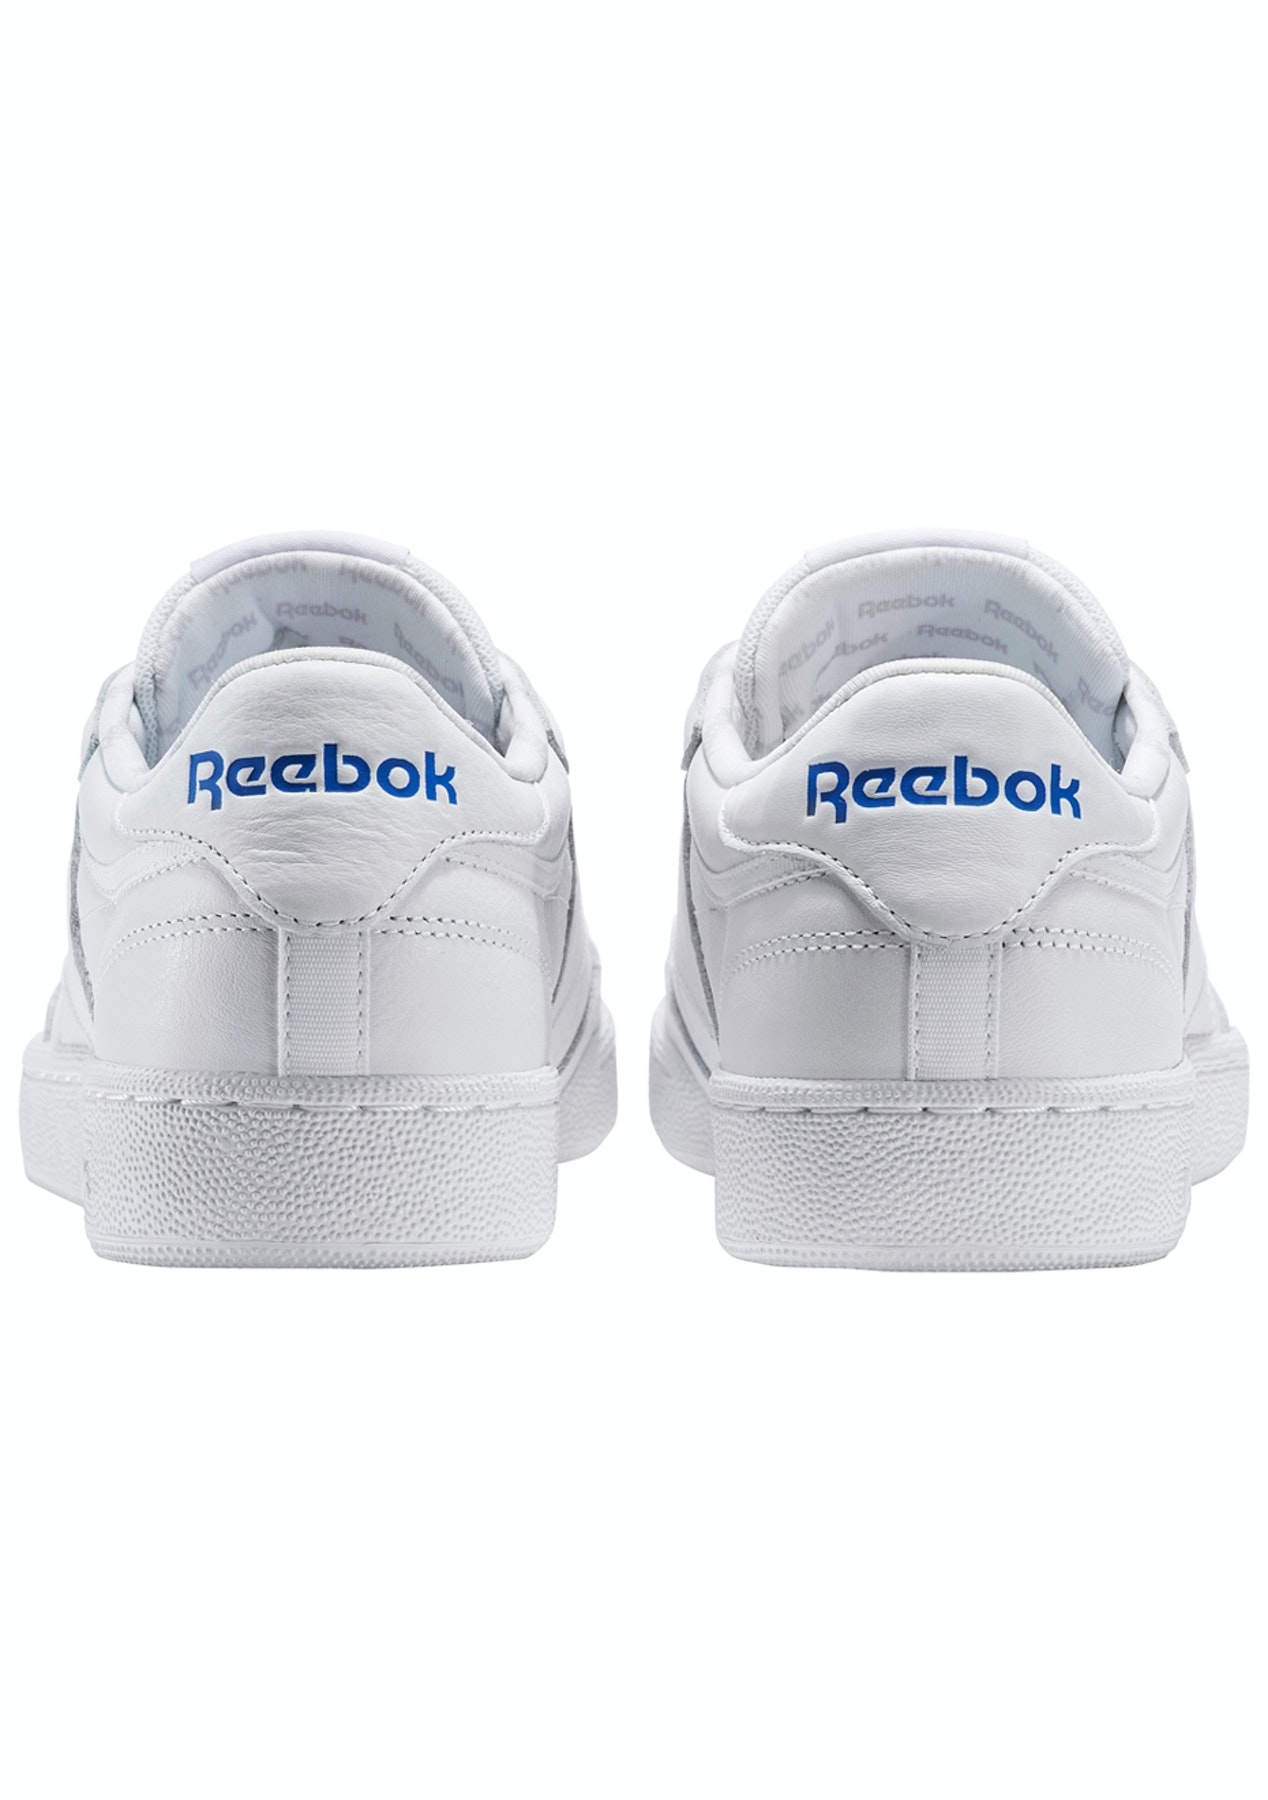 11bf2f7d23b Reebok Mens - Club C 85 So White Lgh Solid Grey - Puma   More Sell Out -  Onceit